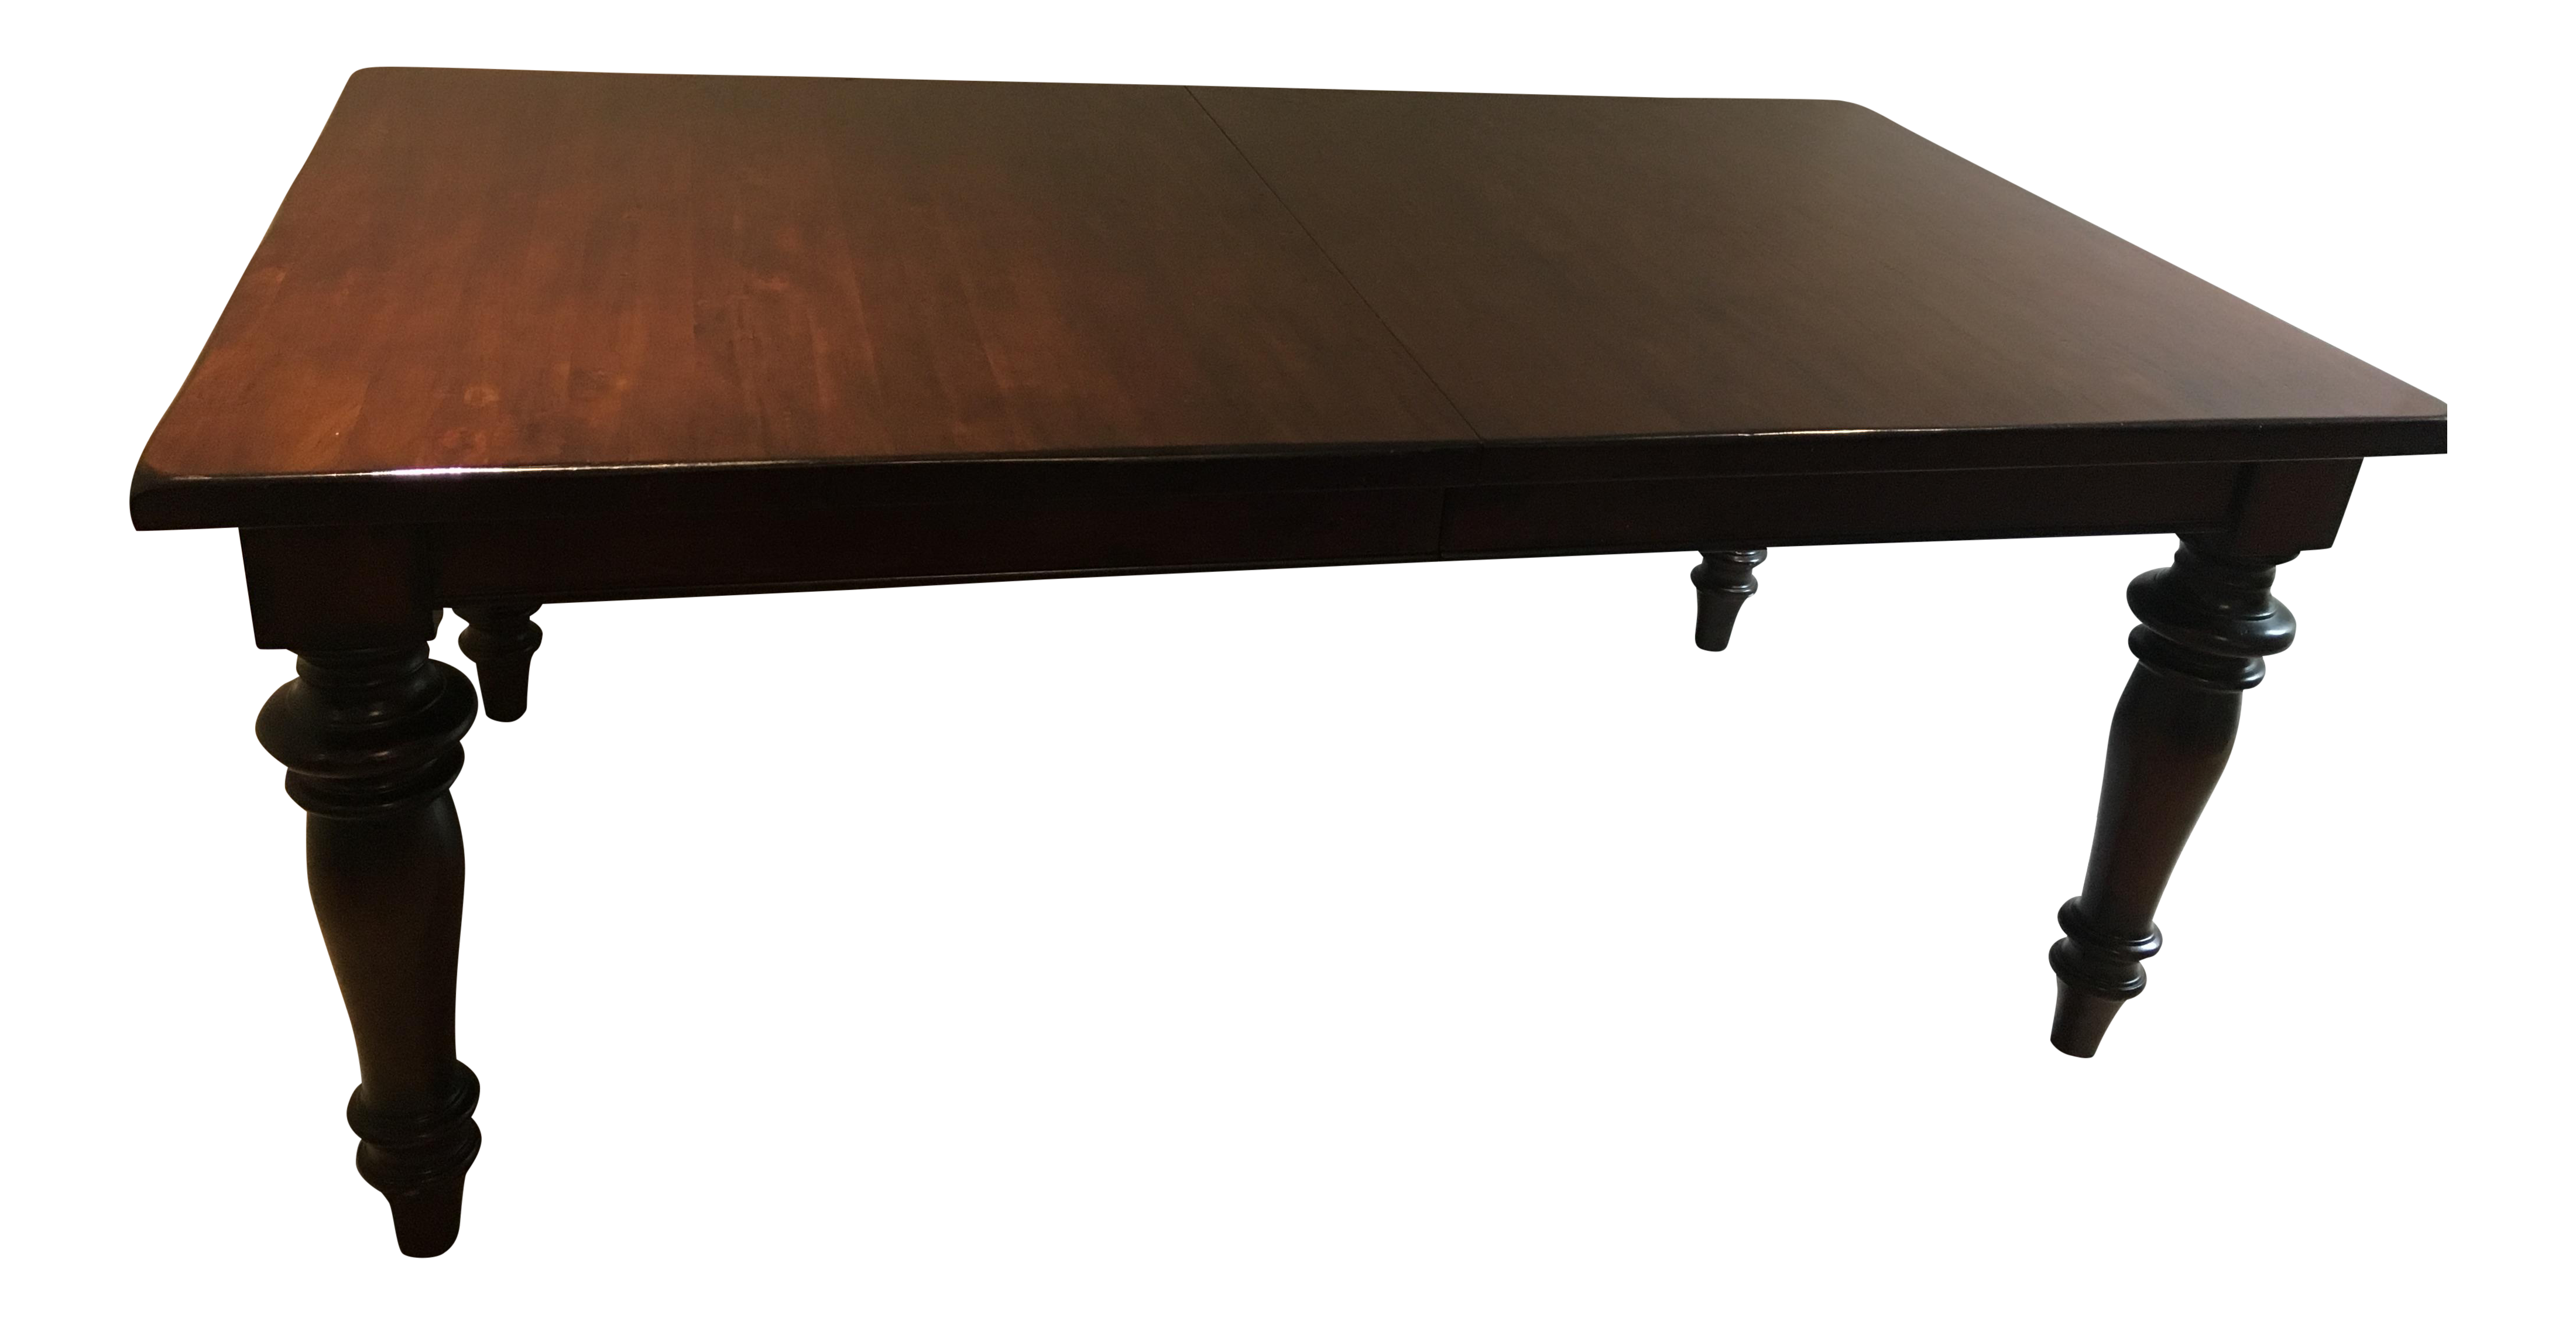 Mahogany Rectangular Dining Table With 2 Leaves Chairish : mahogany rectangular dining table with 2 leaves 6776 from www.chairish.com size 4401 x 2264 png 5807kB